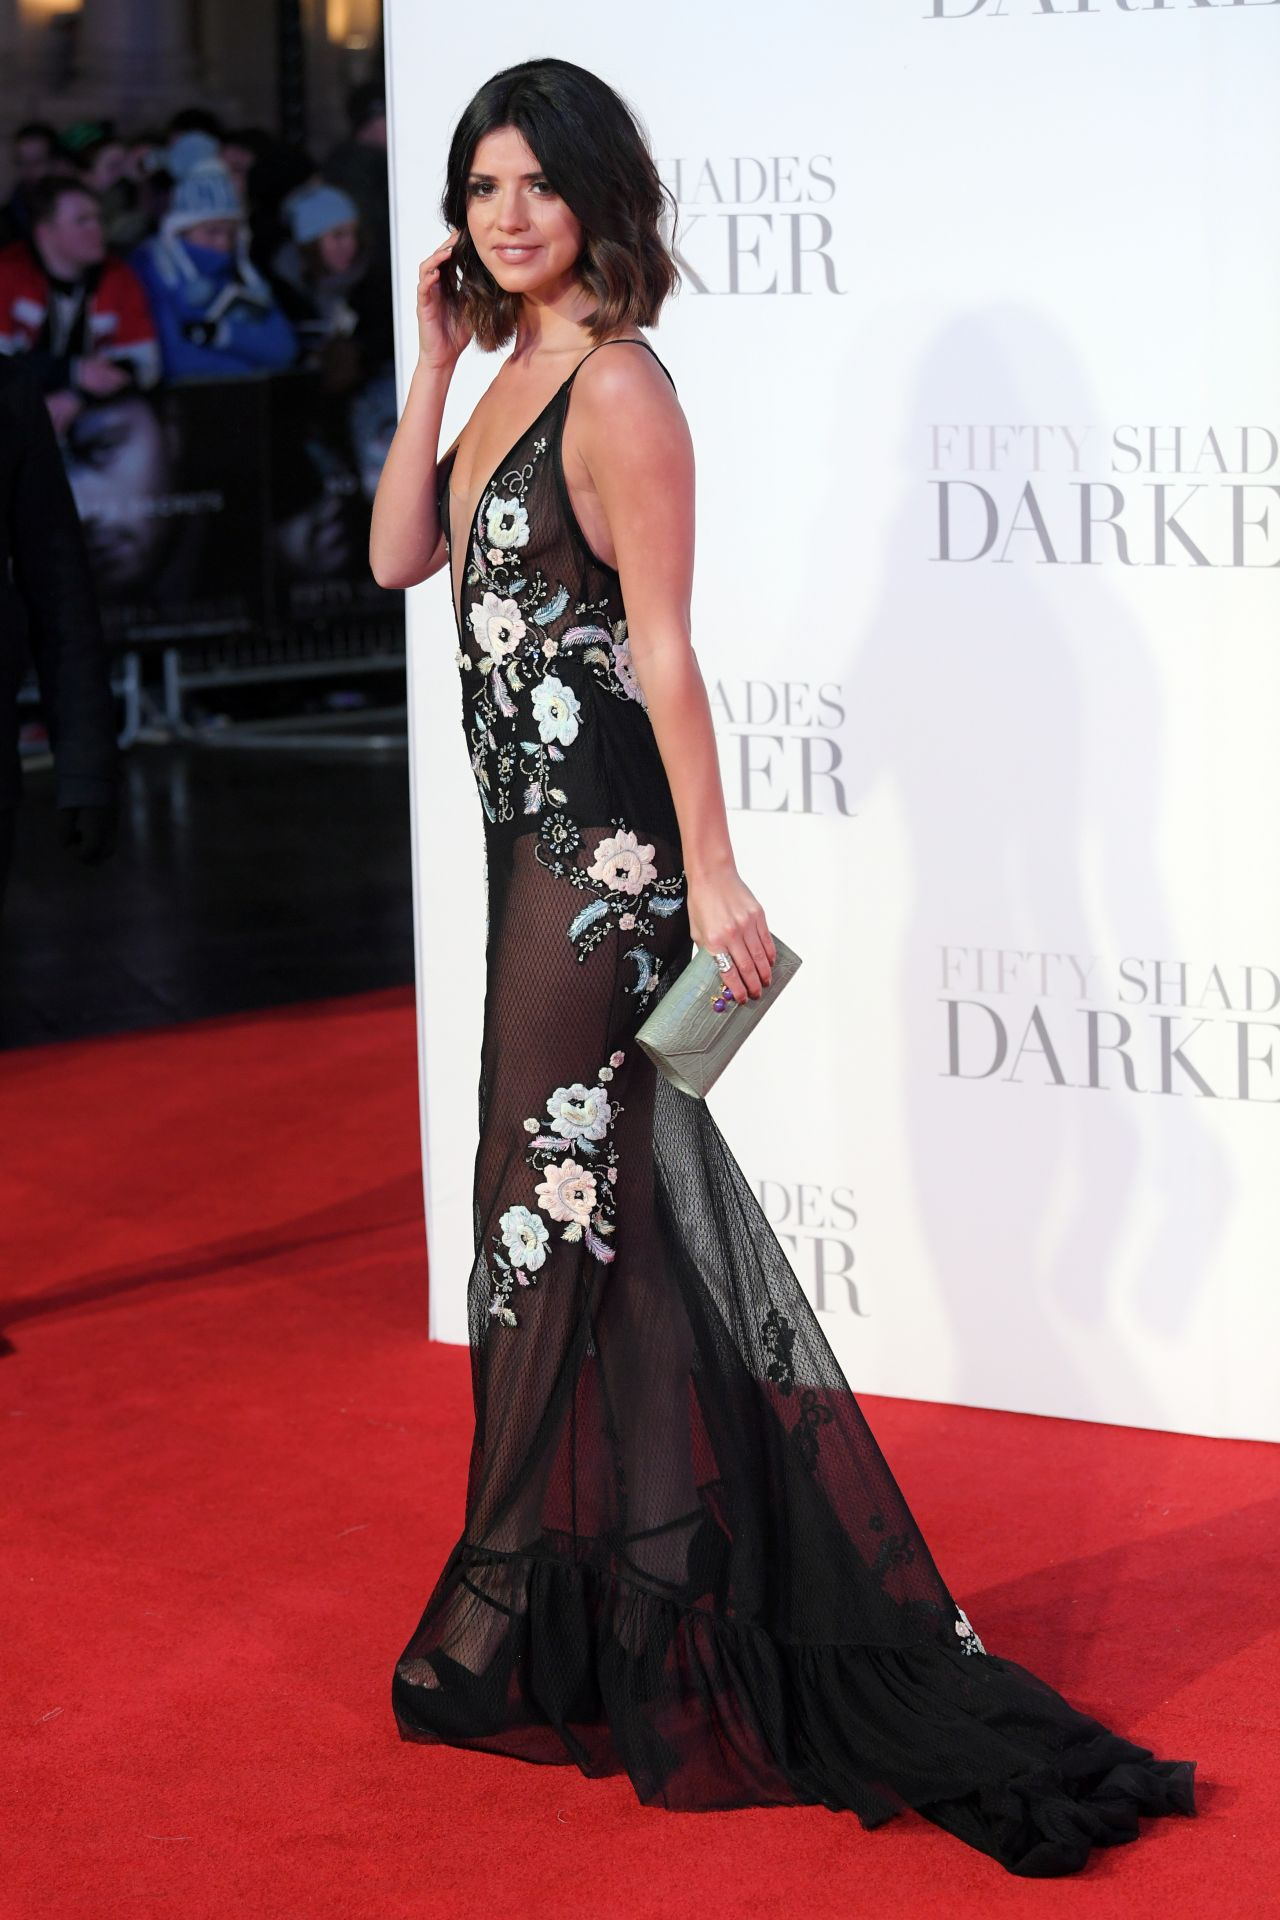 Lucy mecklenburgh fifty shades darker premiere at odeon leicester square in london 292019 new picture